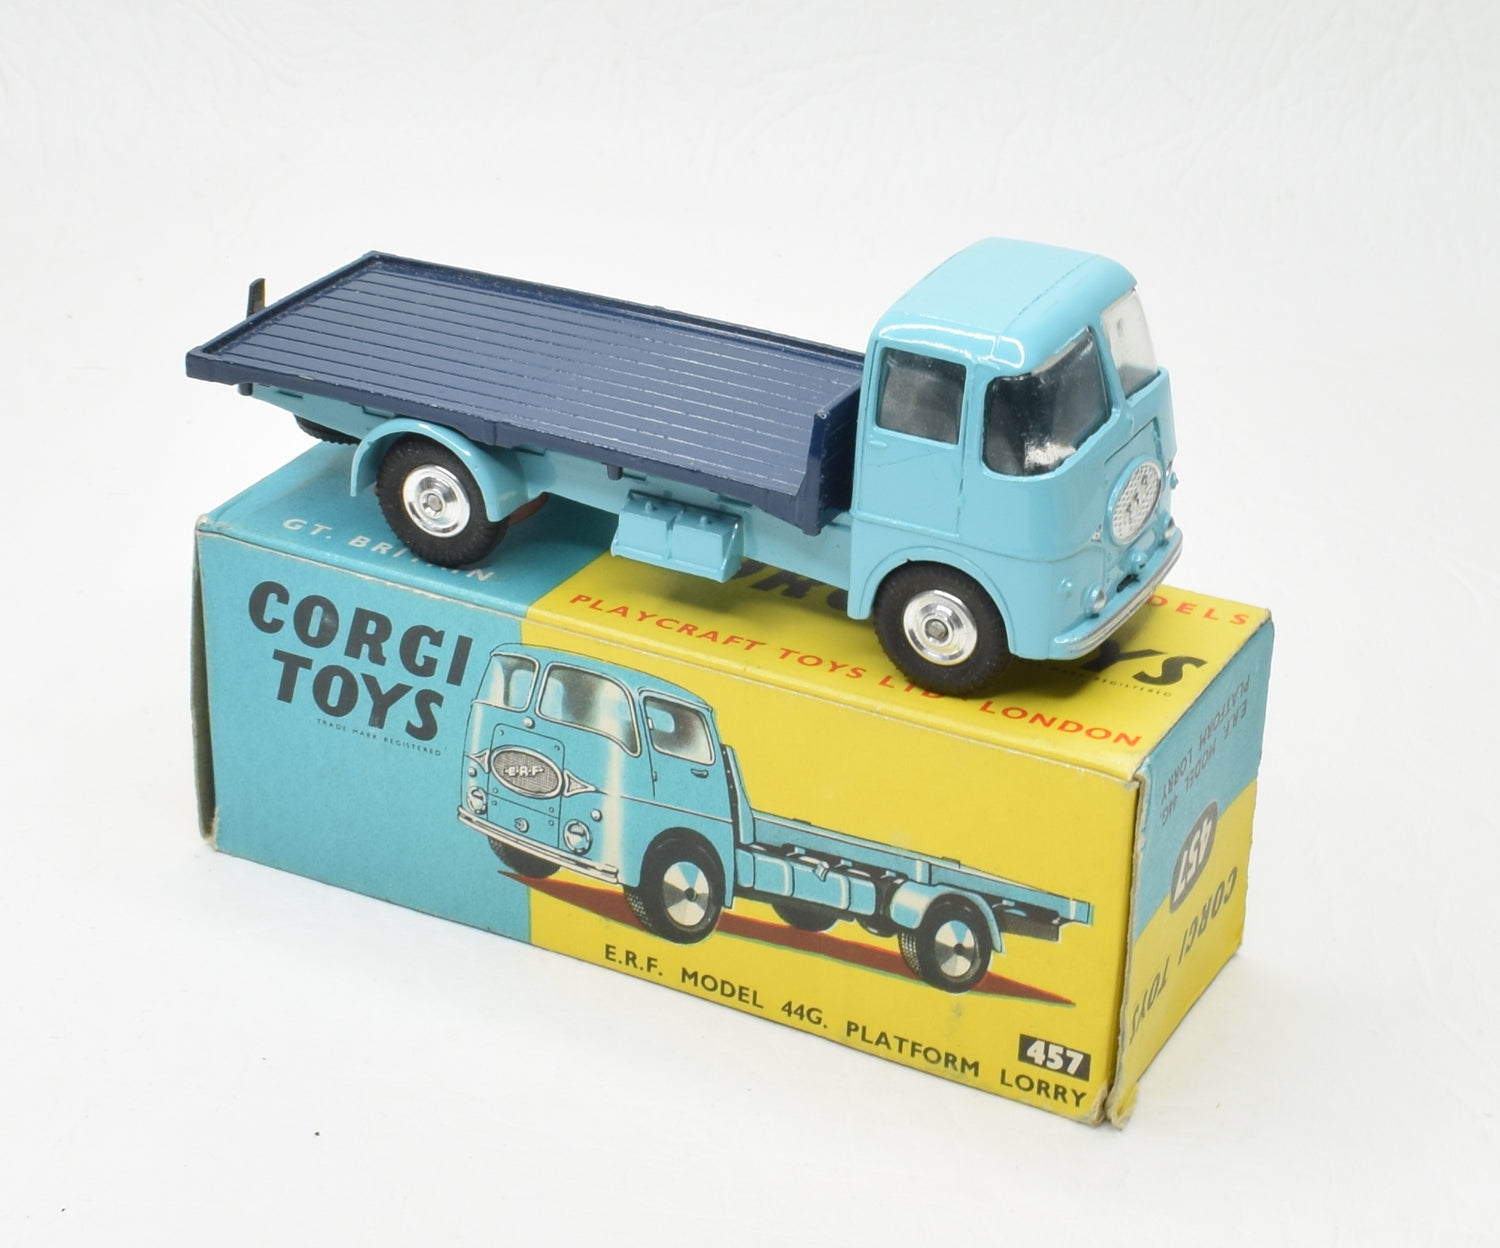 Corgi toys 457 E.R.F Platform Lorry Very Near Mint/Boxed 'P.C.R' Collection